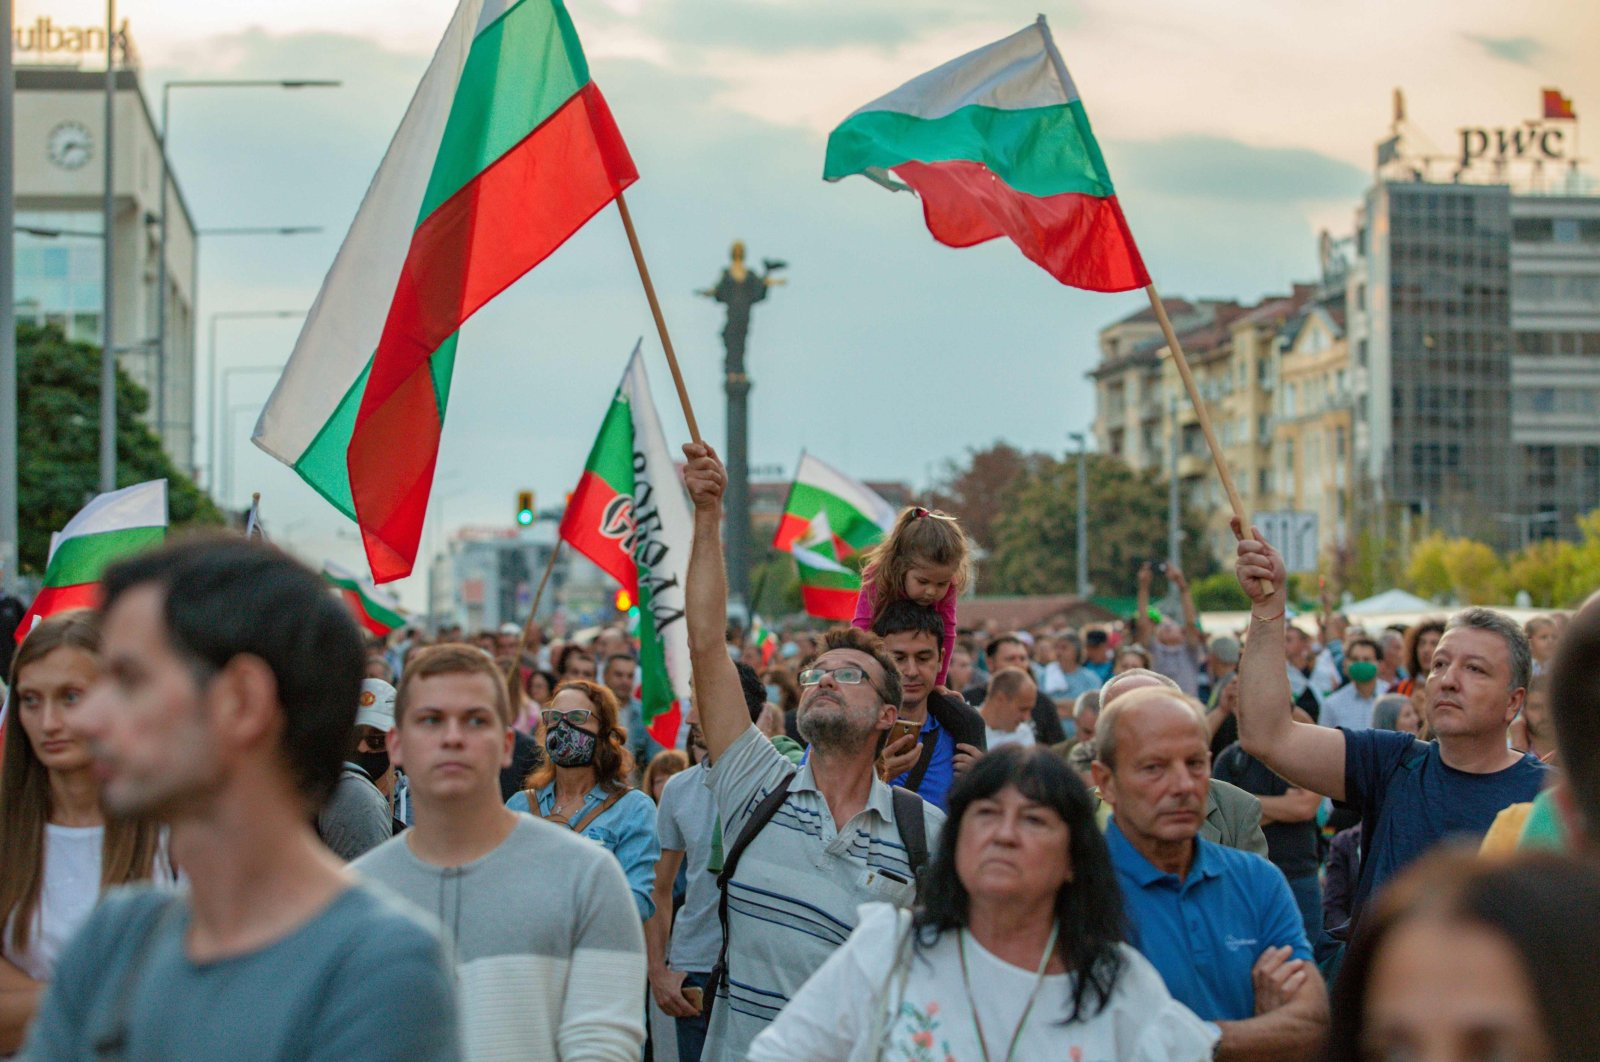 Protesters shout slogans and wave Bulgarian flags during a demonstration near the parliament building in Sofia, Bulgaria, Sept. 22, 2020. (AFP Photo)